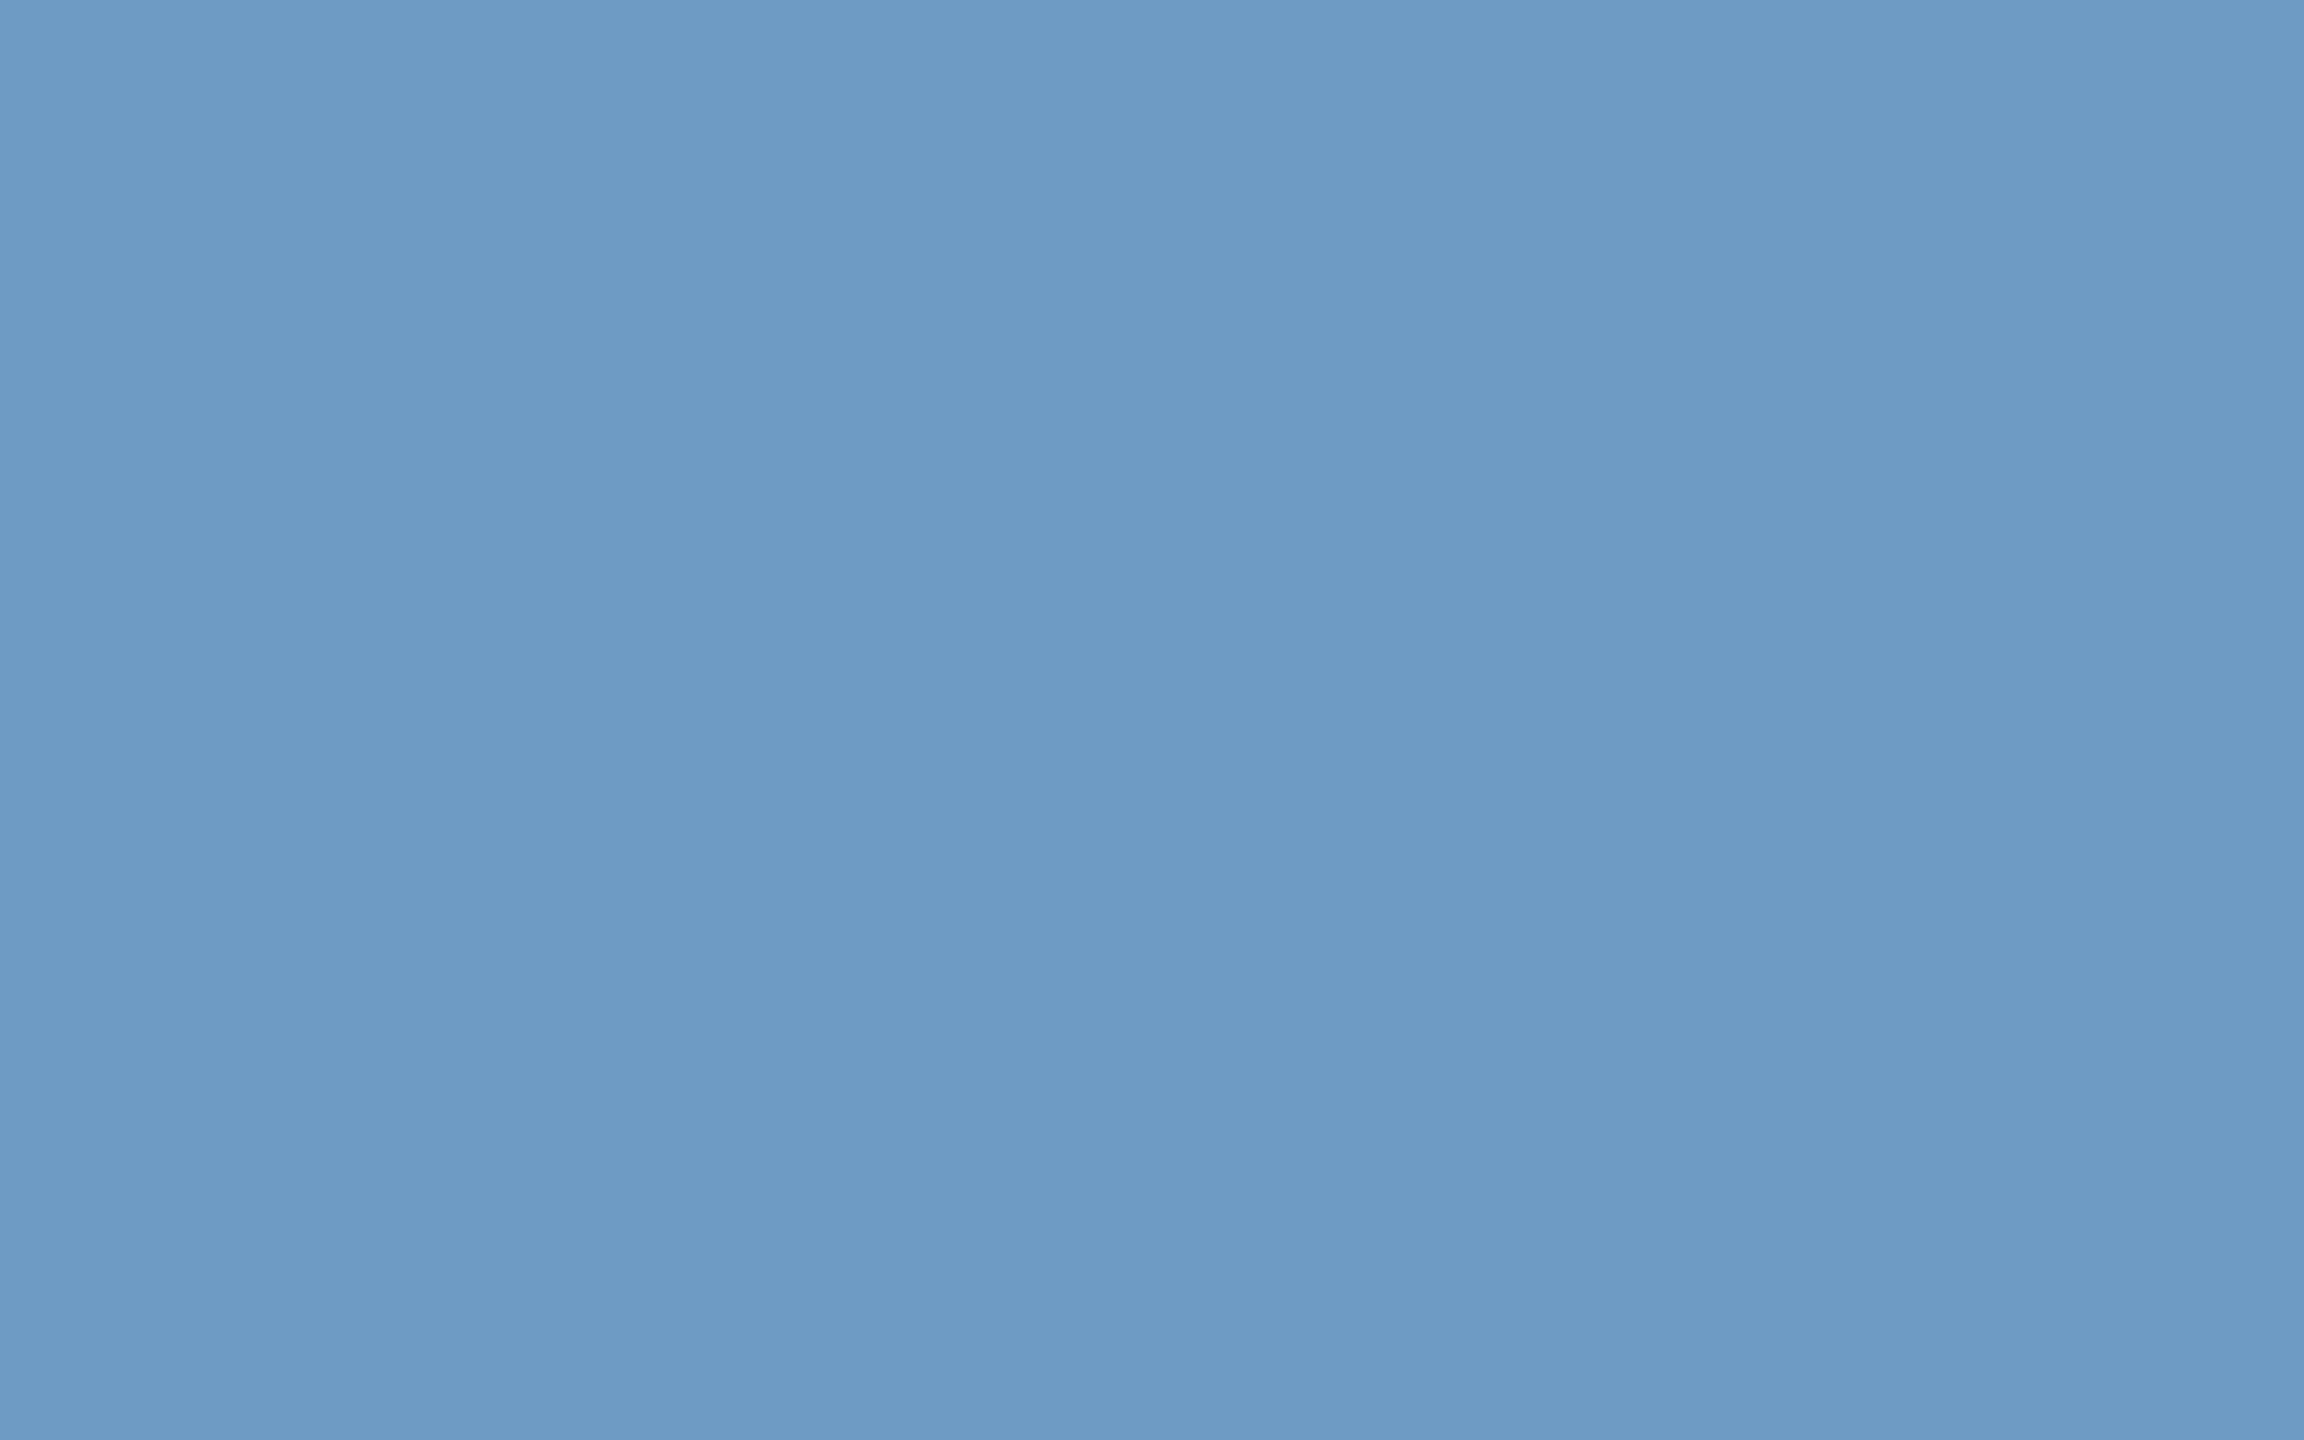 2304x1440 Cerulean Frost Solid Color Background